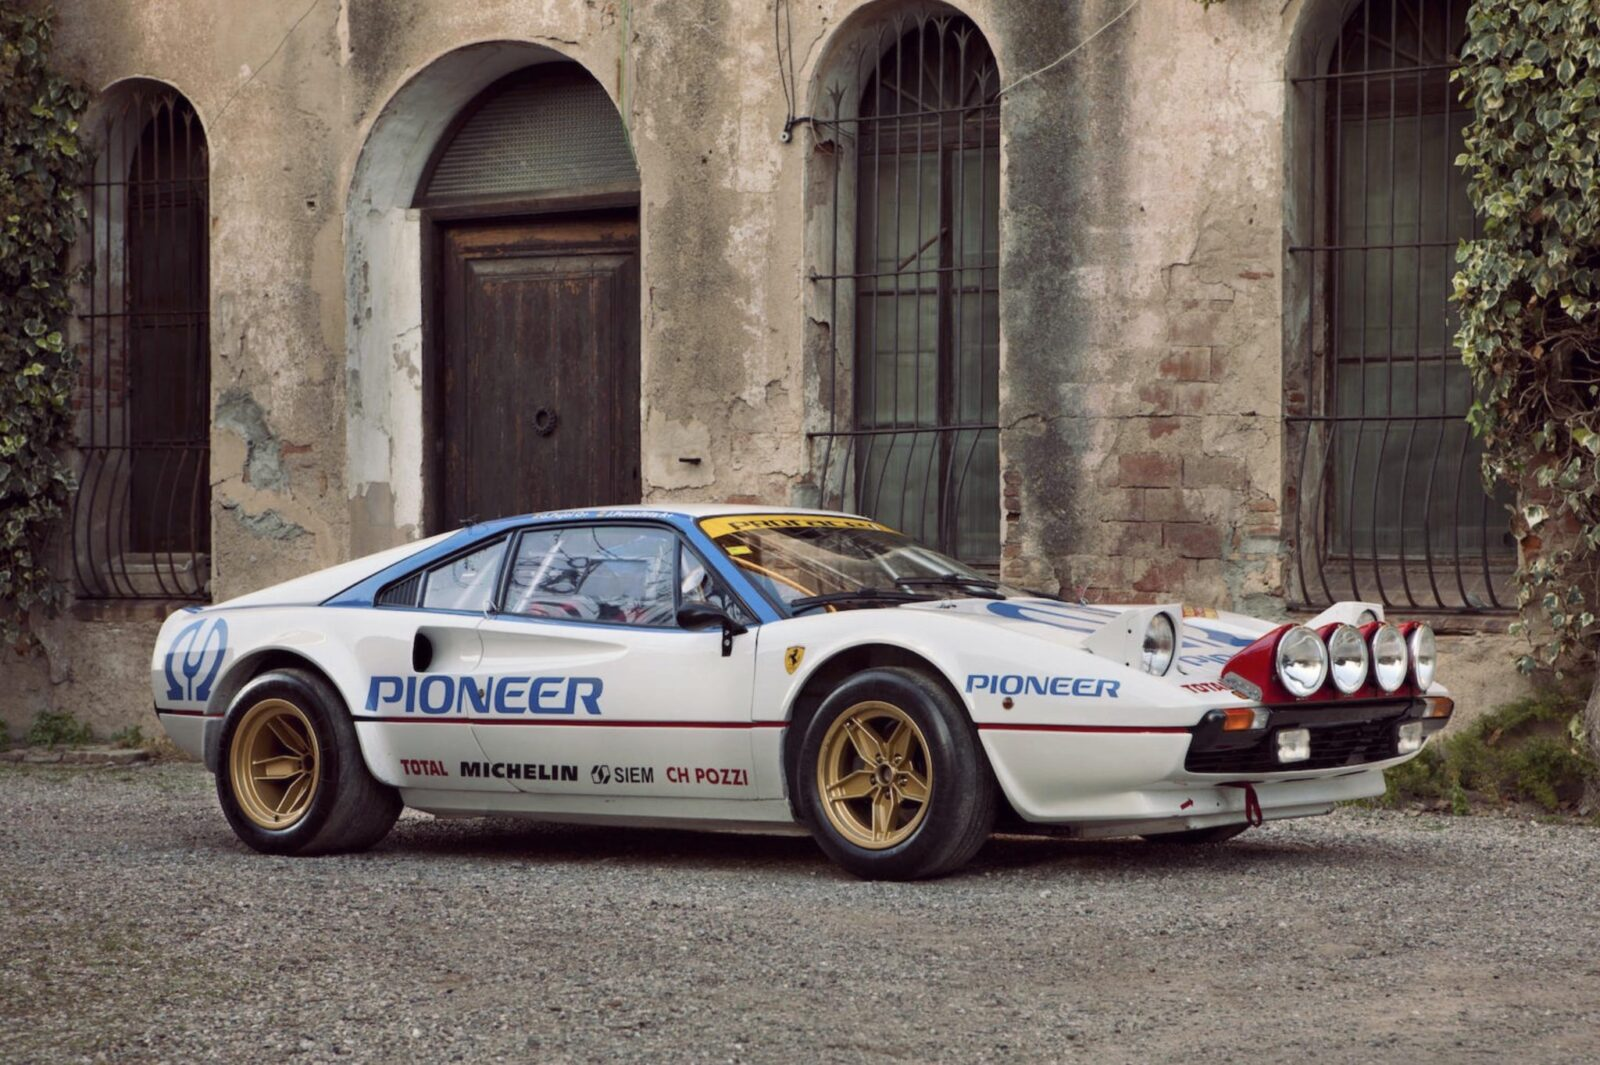 ferrari 308 gtb car 3 1600x1065 - Ferrari 308 GTB Group 4 Racer